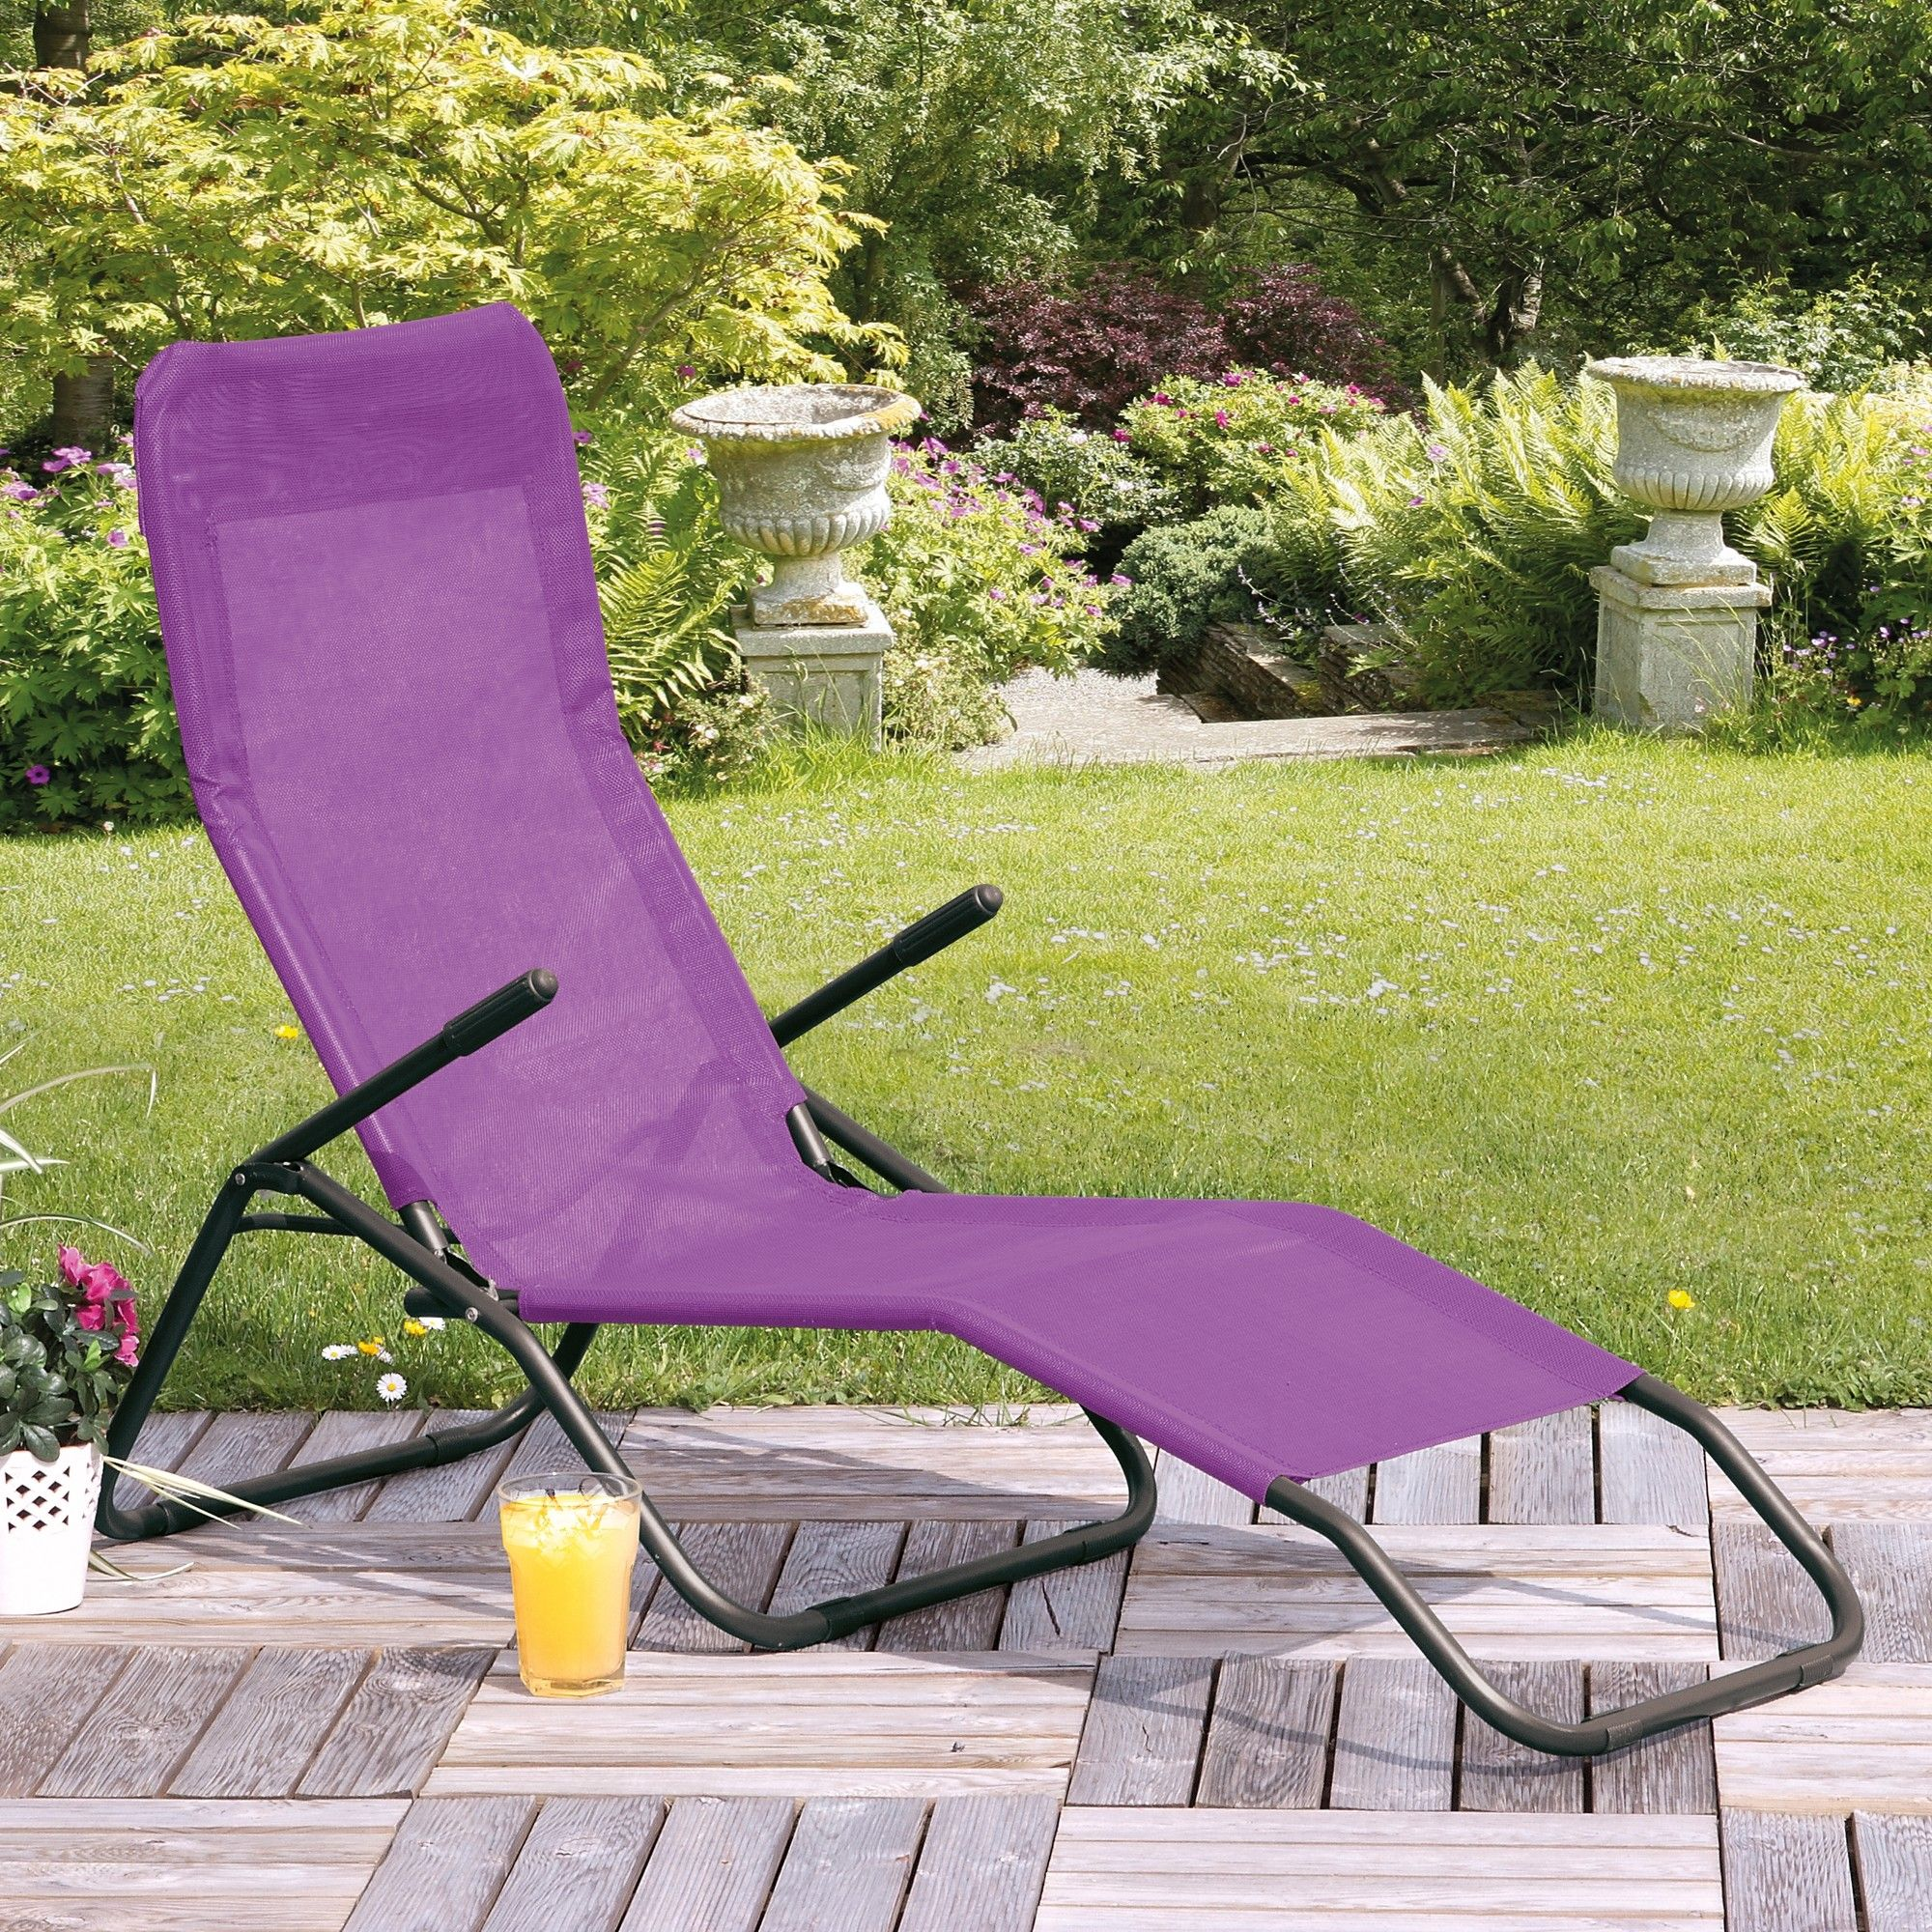 Pleasing Suntime Outdoor Living Siesta Chaise Lounge Reviews Cjindustries Chair Design For Home Cjindustriesco